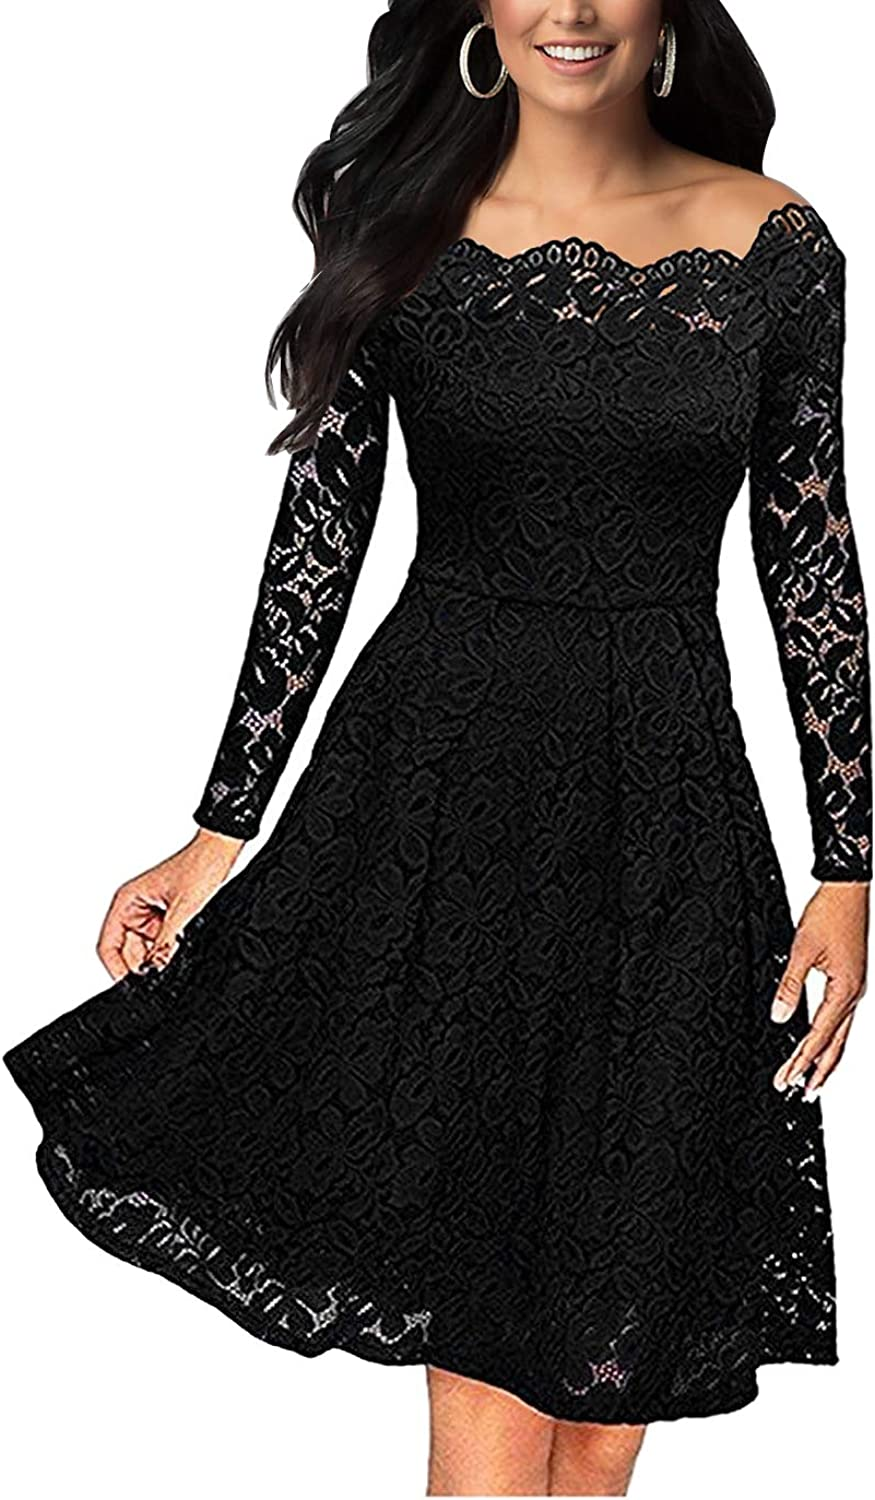 Women's Swing Dresses Long Sleeves Lace Off The Shoulder Gown